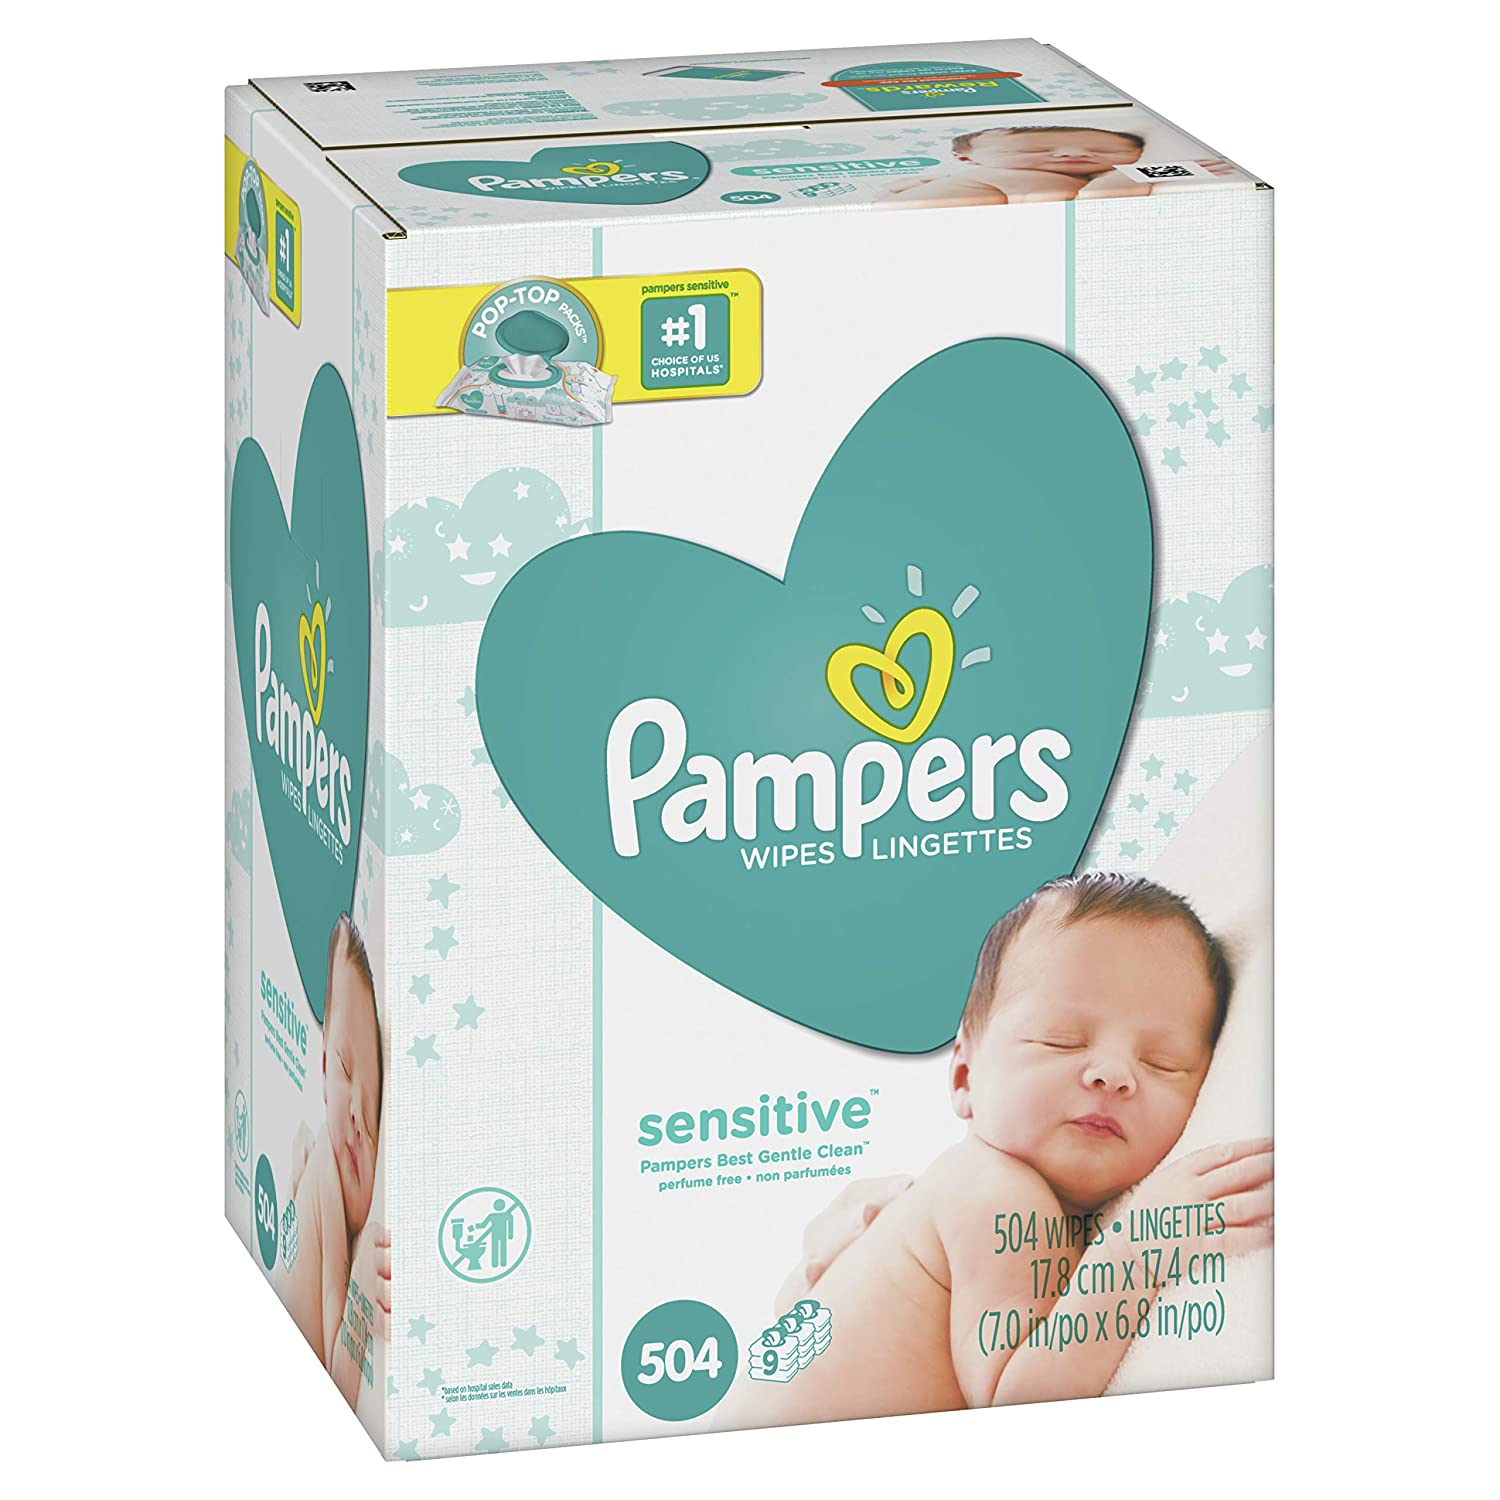 Pampers Sensitive Water-Based Baby Diaper Wipes, 9 Pop-Top Travel Packs - Hypoallergenic and Unscented - 504 Count Procter & Gamble - MF